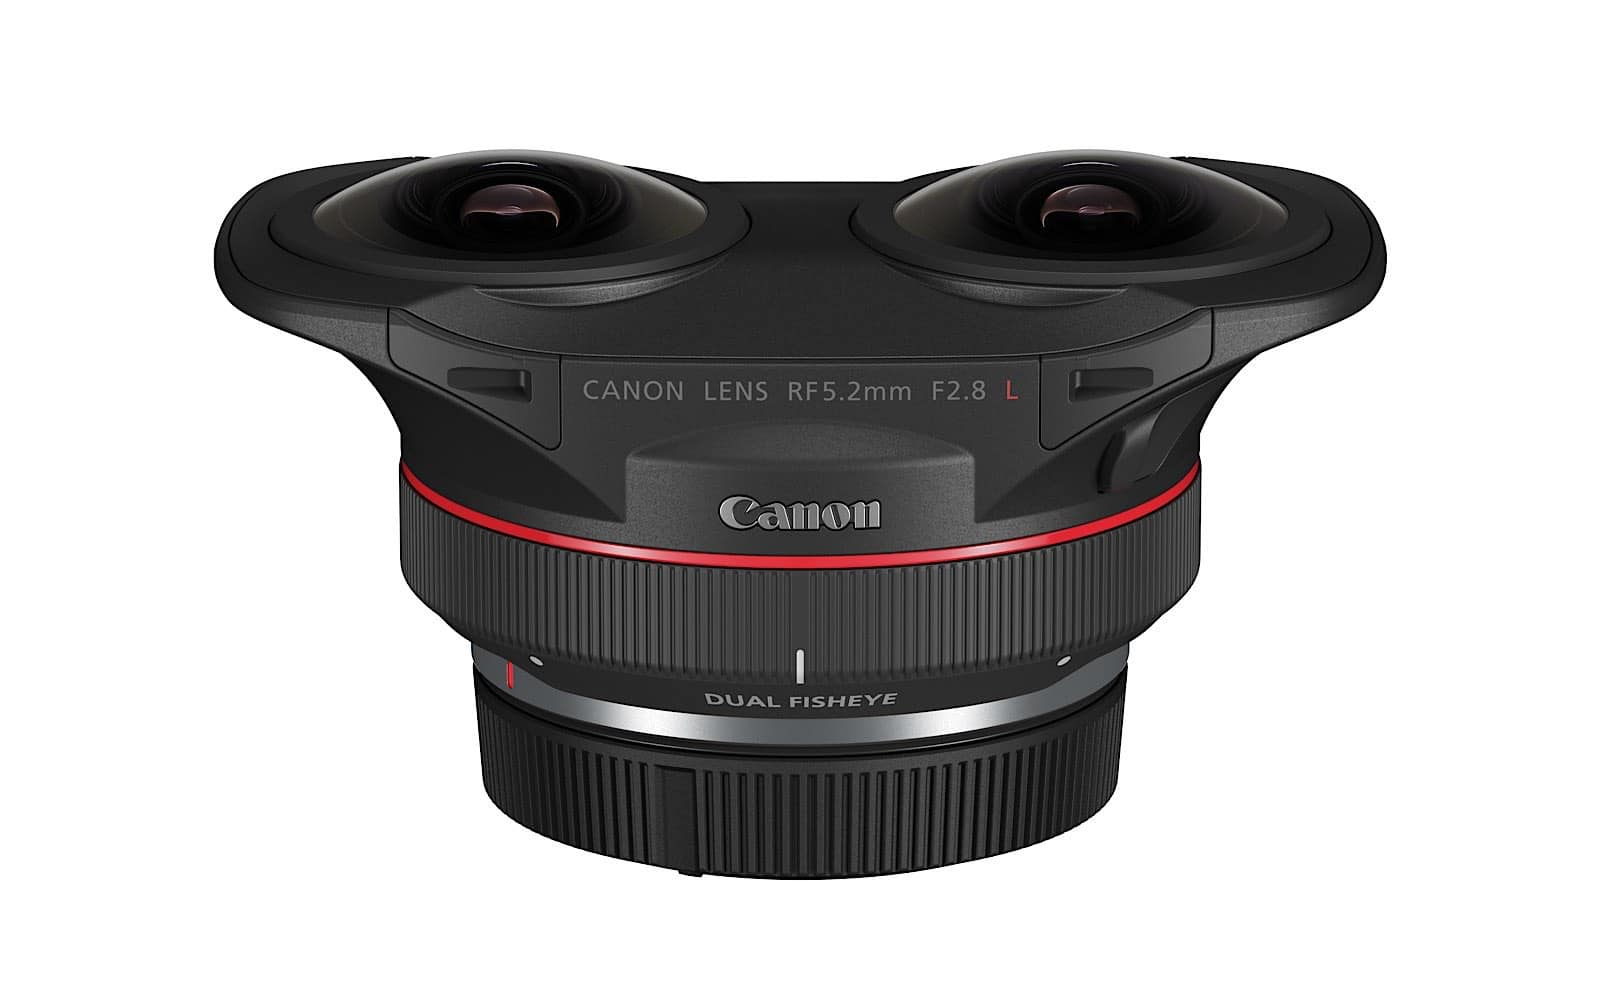 Canon RF 5.2mm F2.8 dual fisheye lens for 3D and VR filmmaking